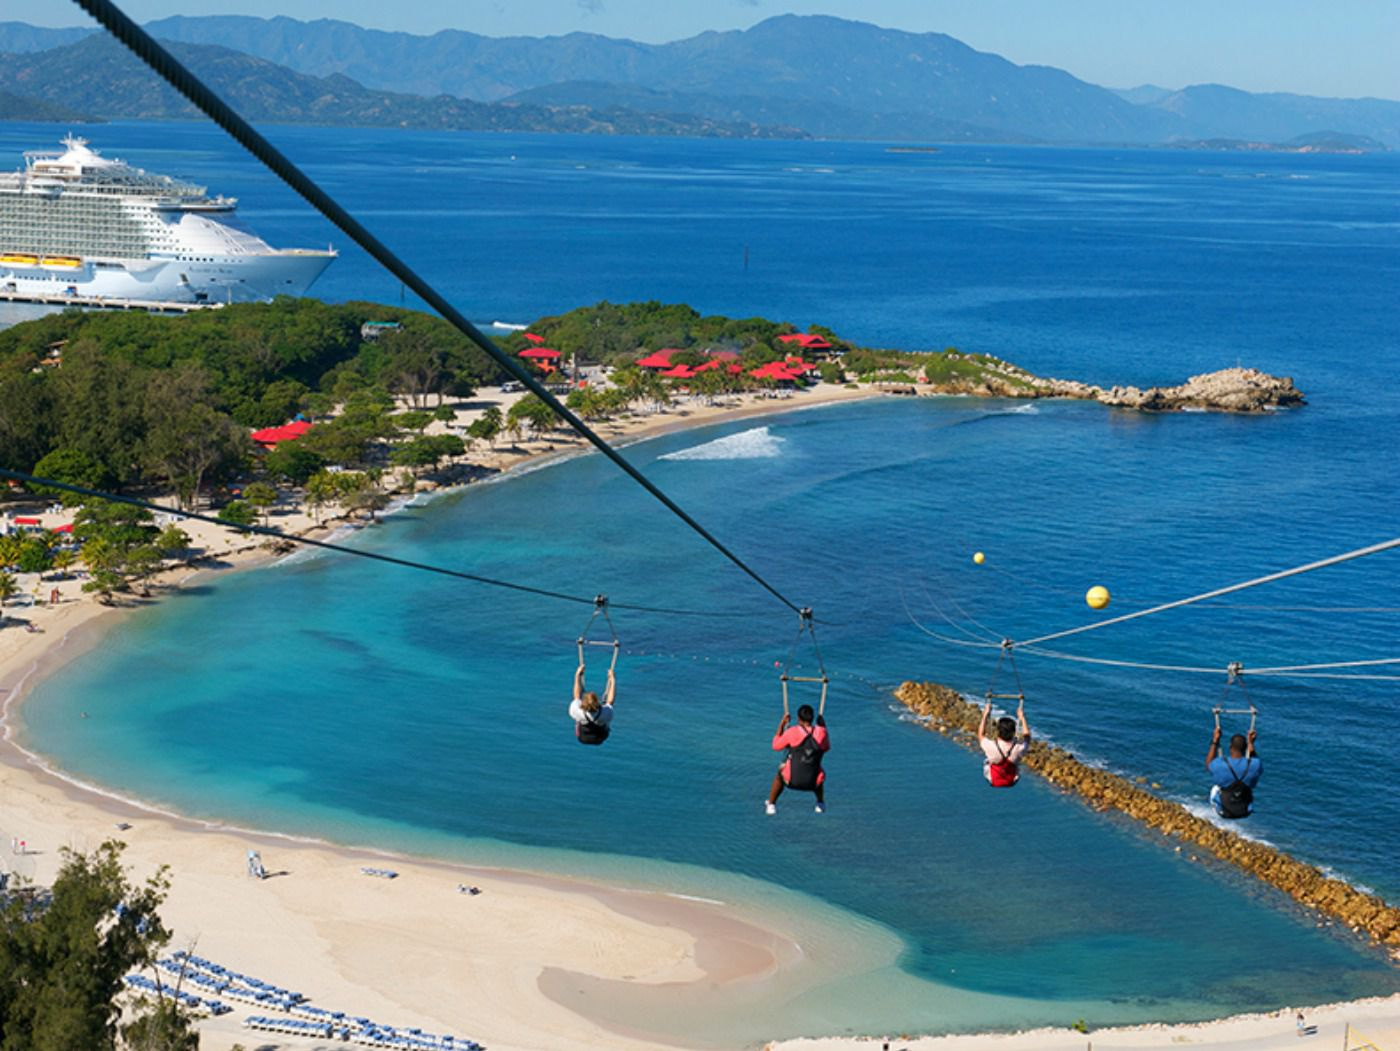 Insane Zip Lines For Thrill Seeking Families With Kids